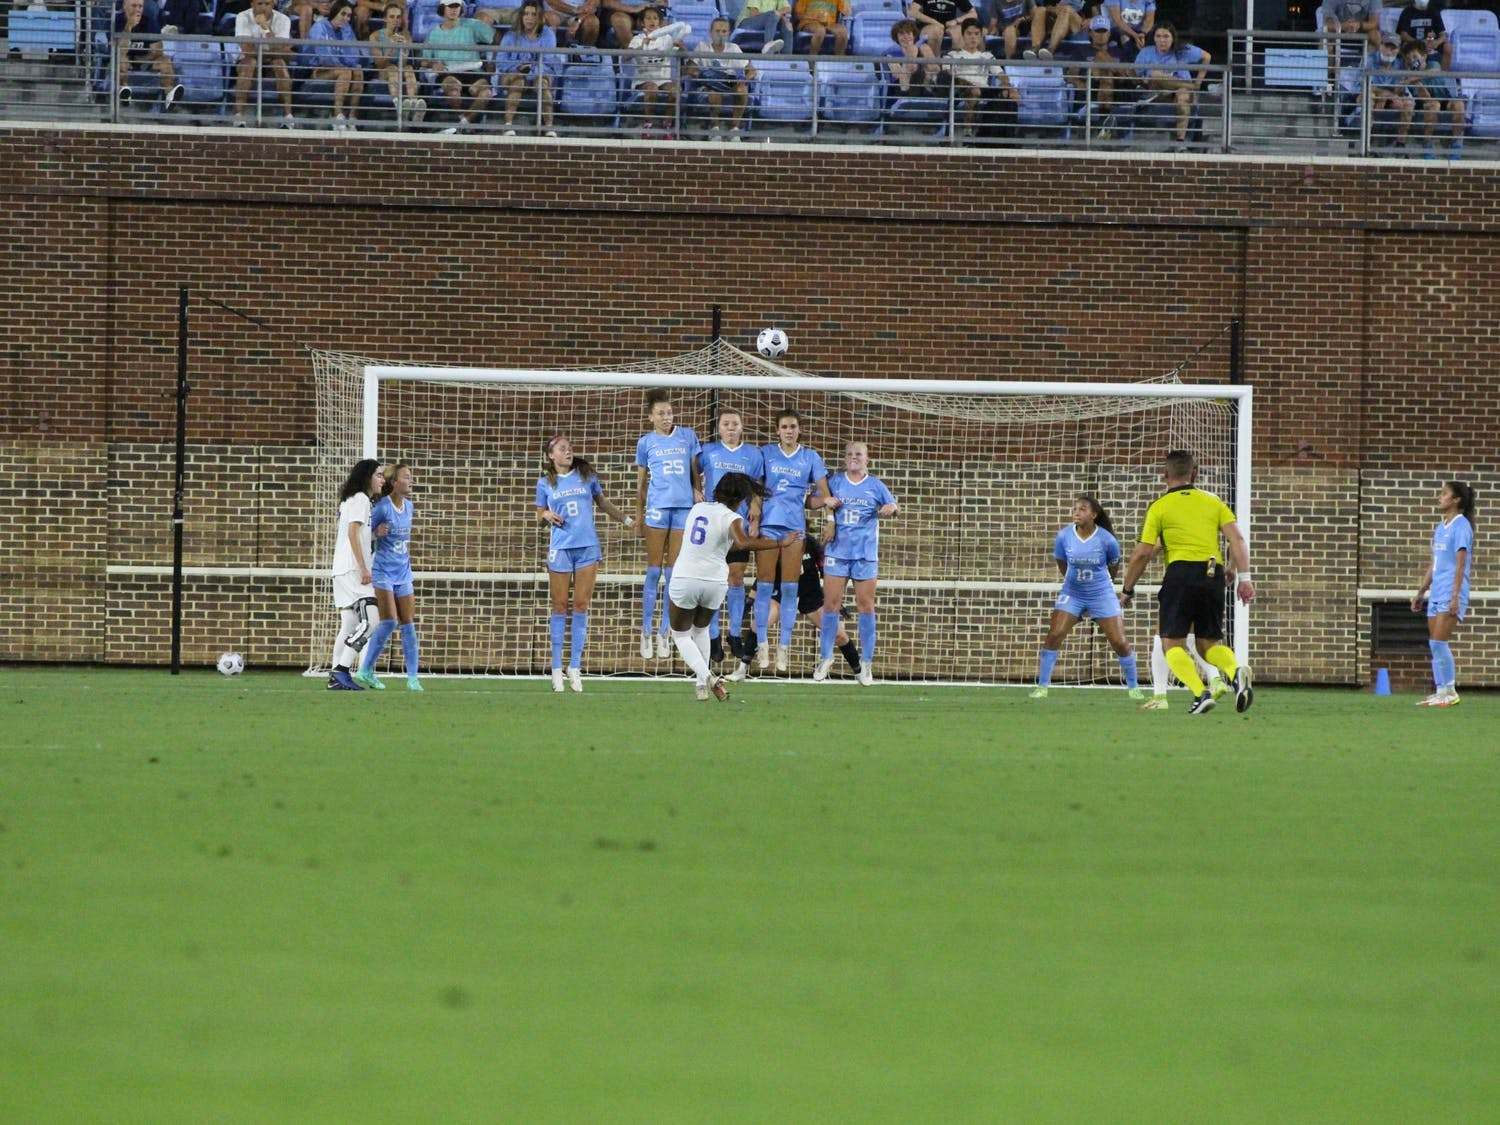 UNC women's soccer players block their goal during the Duke vs UNC soccer game on Sept. 17. The Tar Heels lost 1-0.